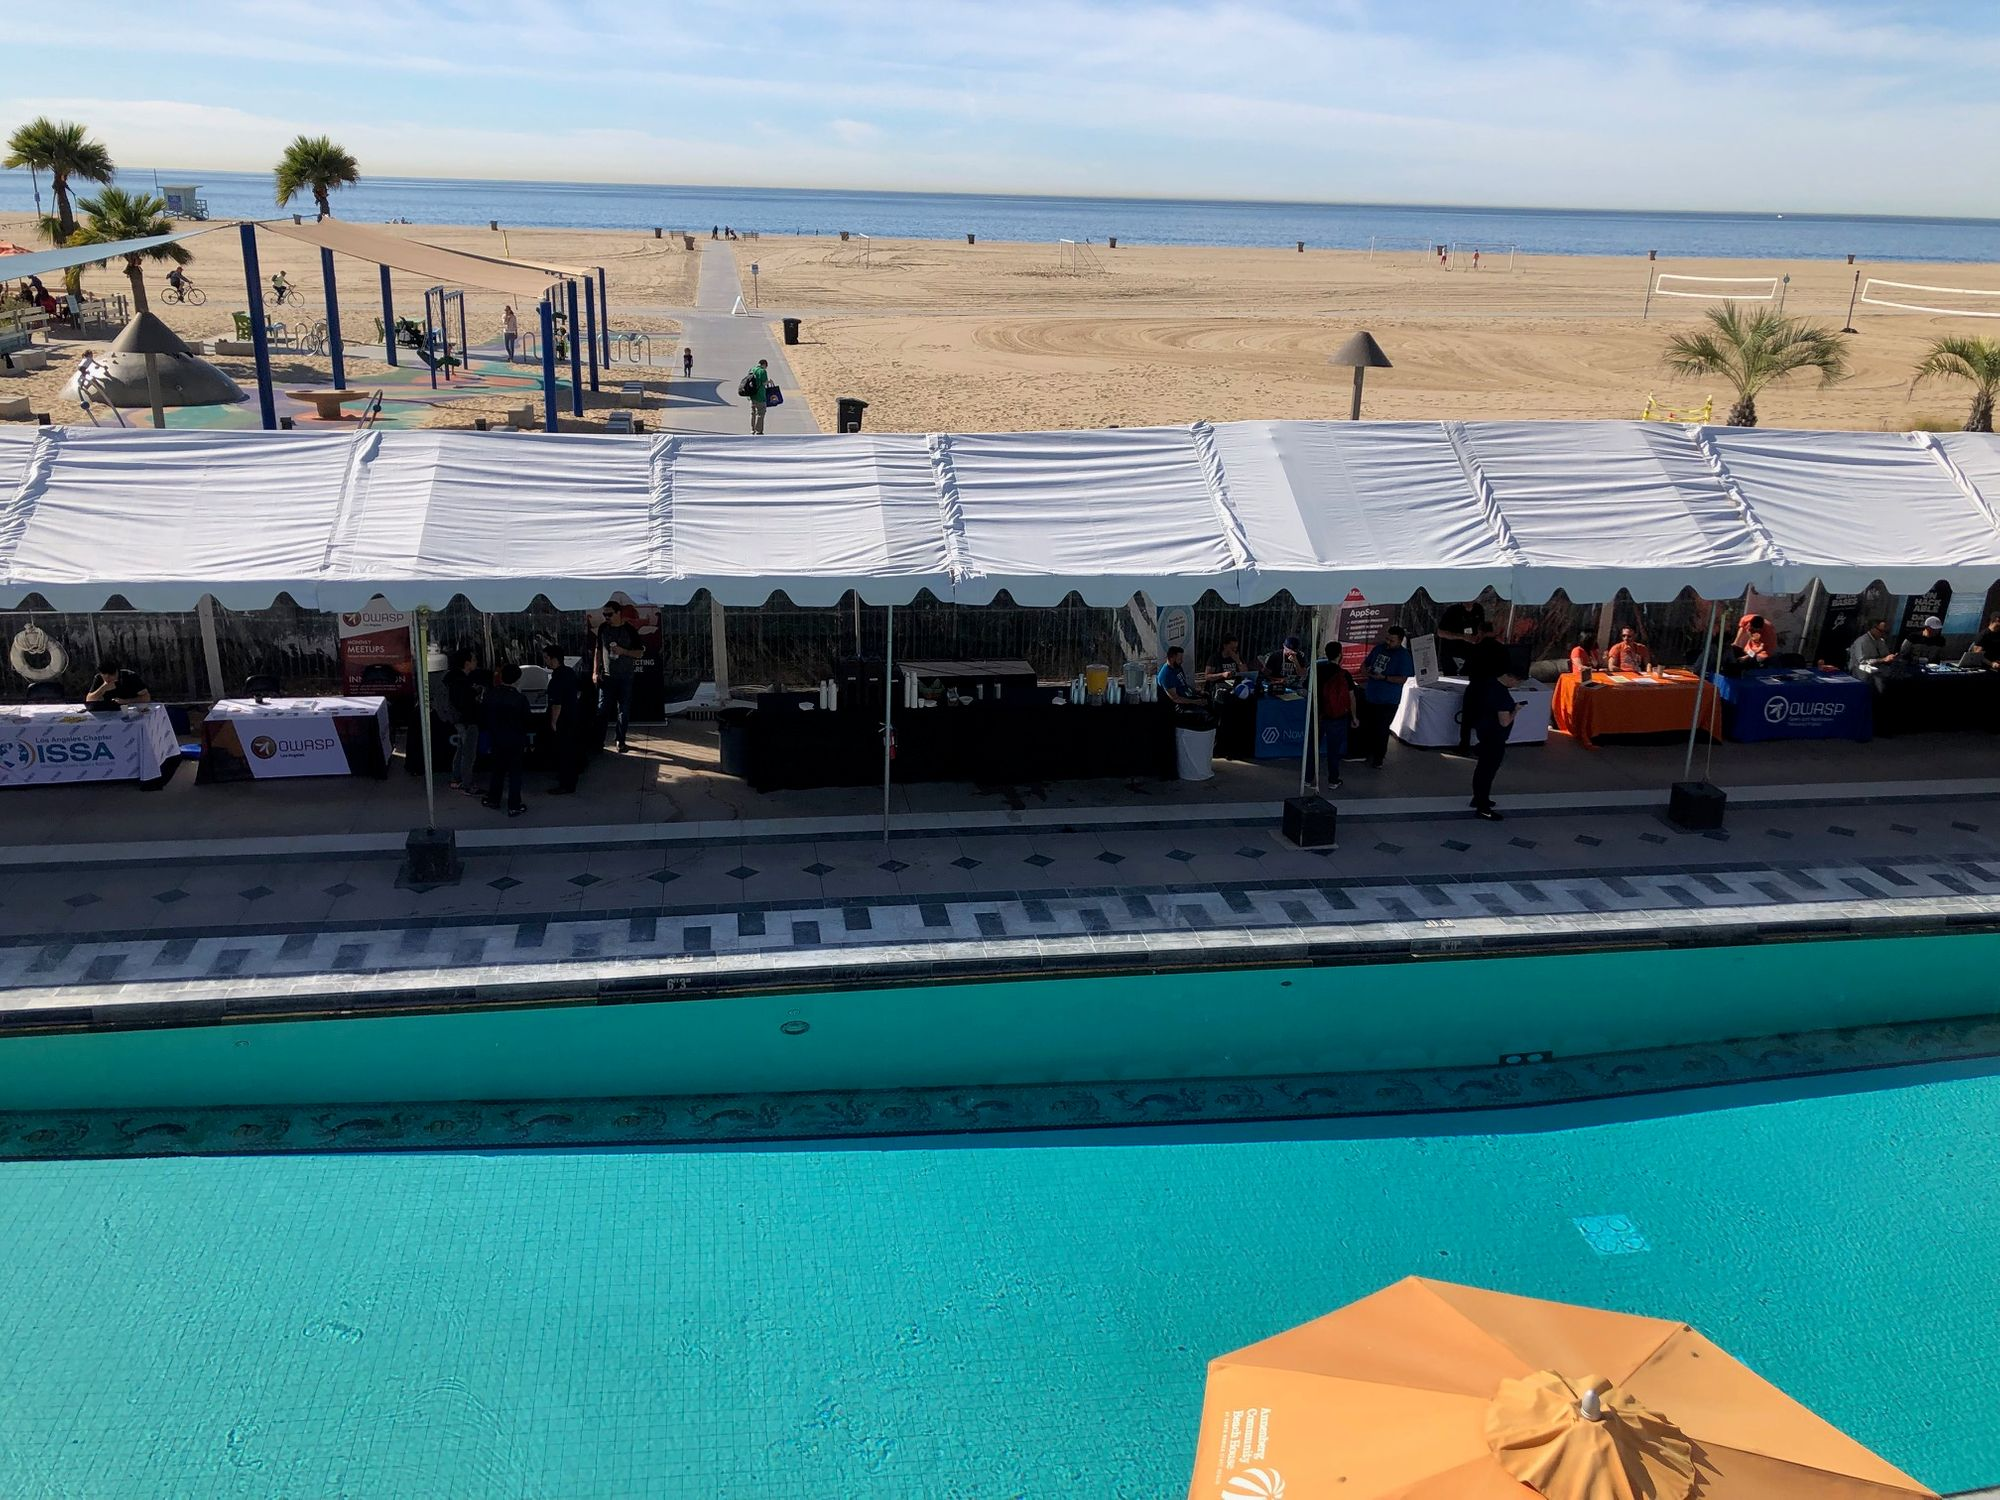 The Annenberg Community Beach House is a two-story building that has a beautiful view of the beach and the pool. Photo courtesy from Miguel A. Calles, MBA.